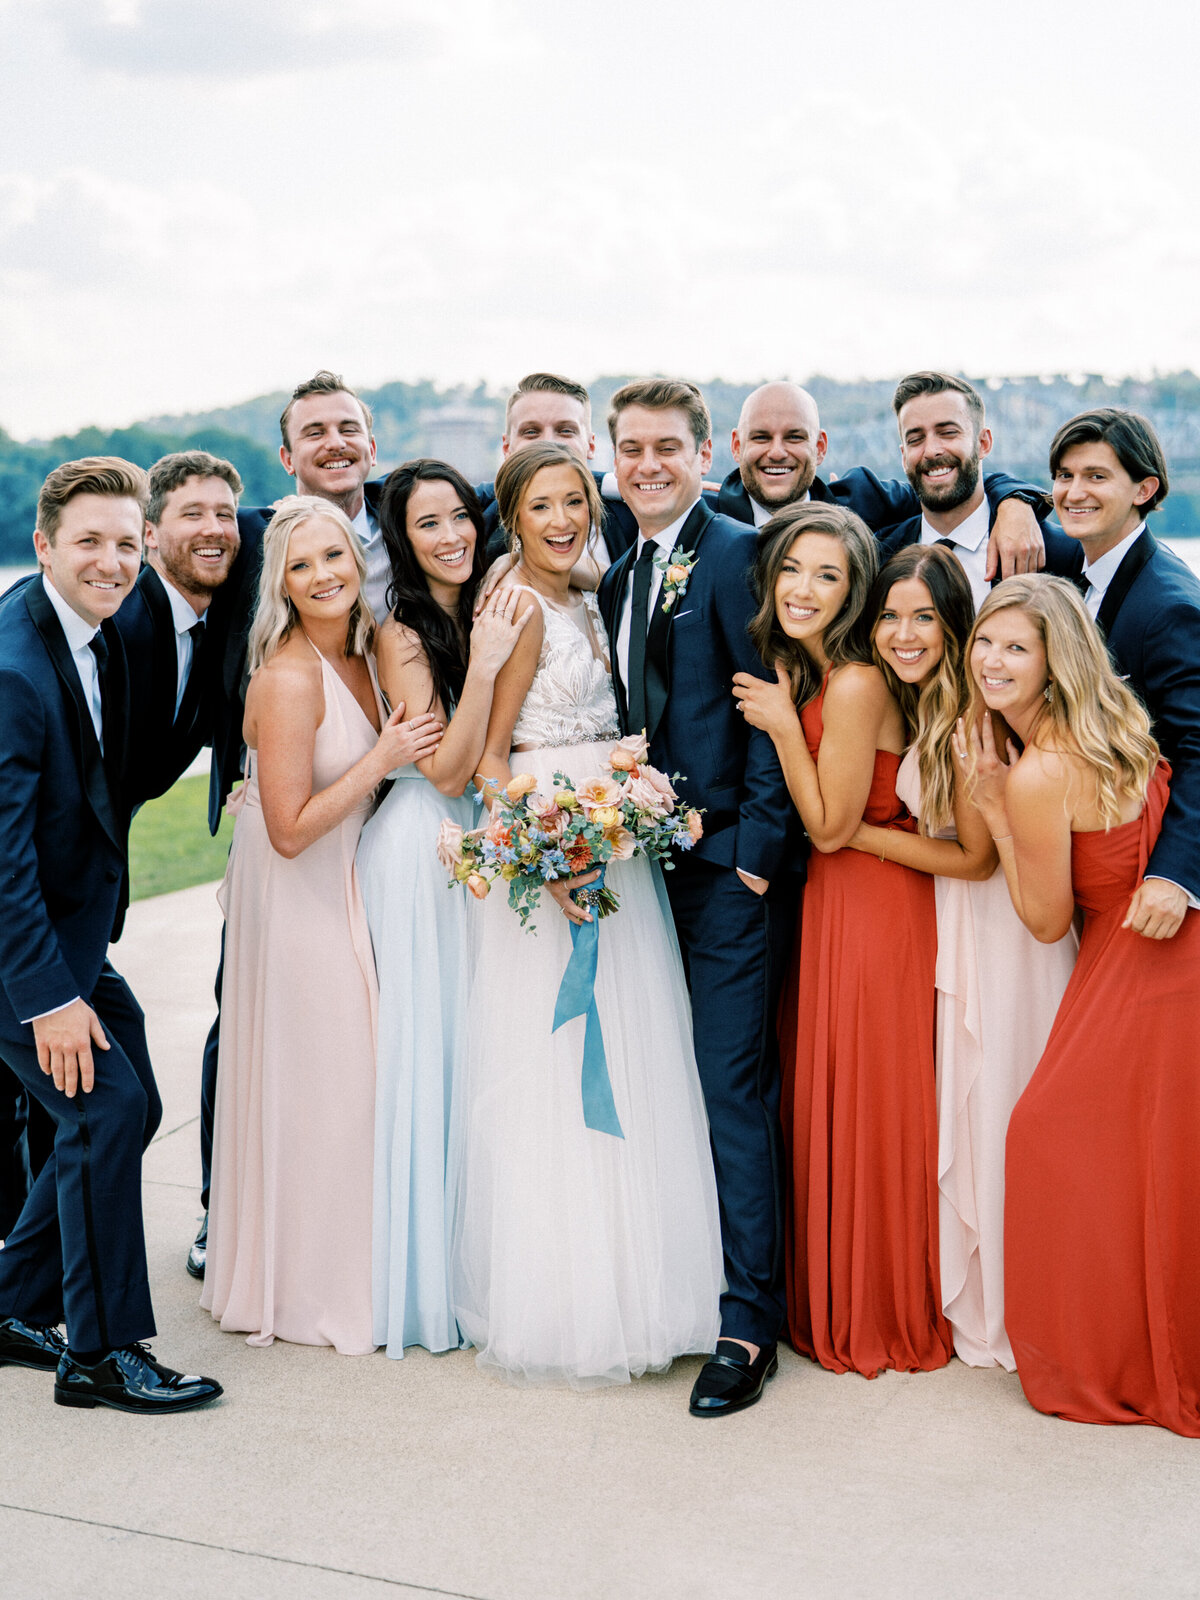 nicoleclareyphoto_alex+andy_bridal party-109